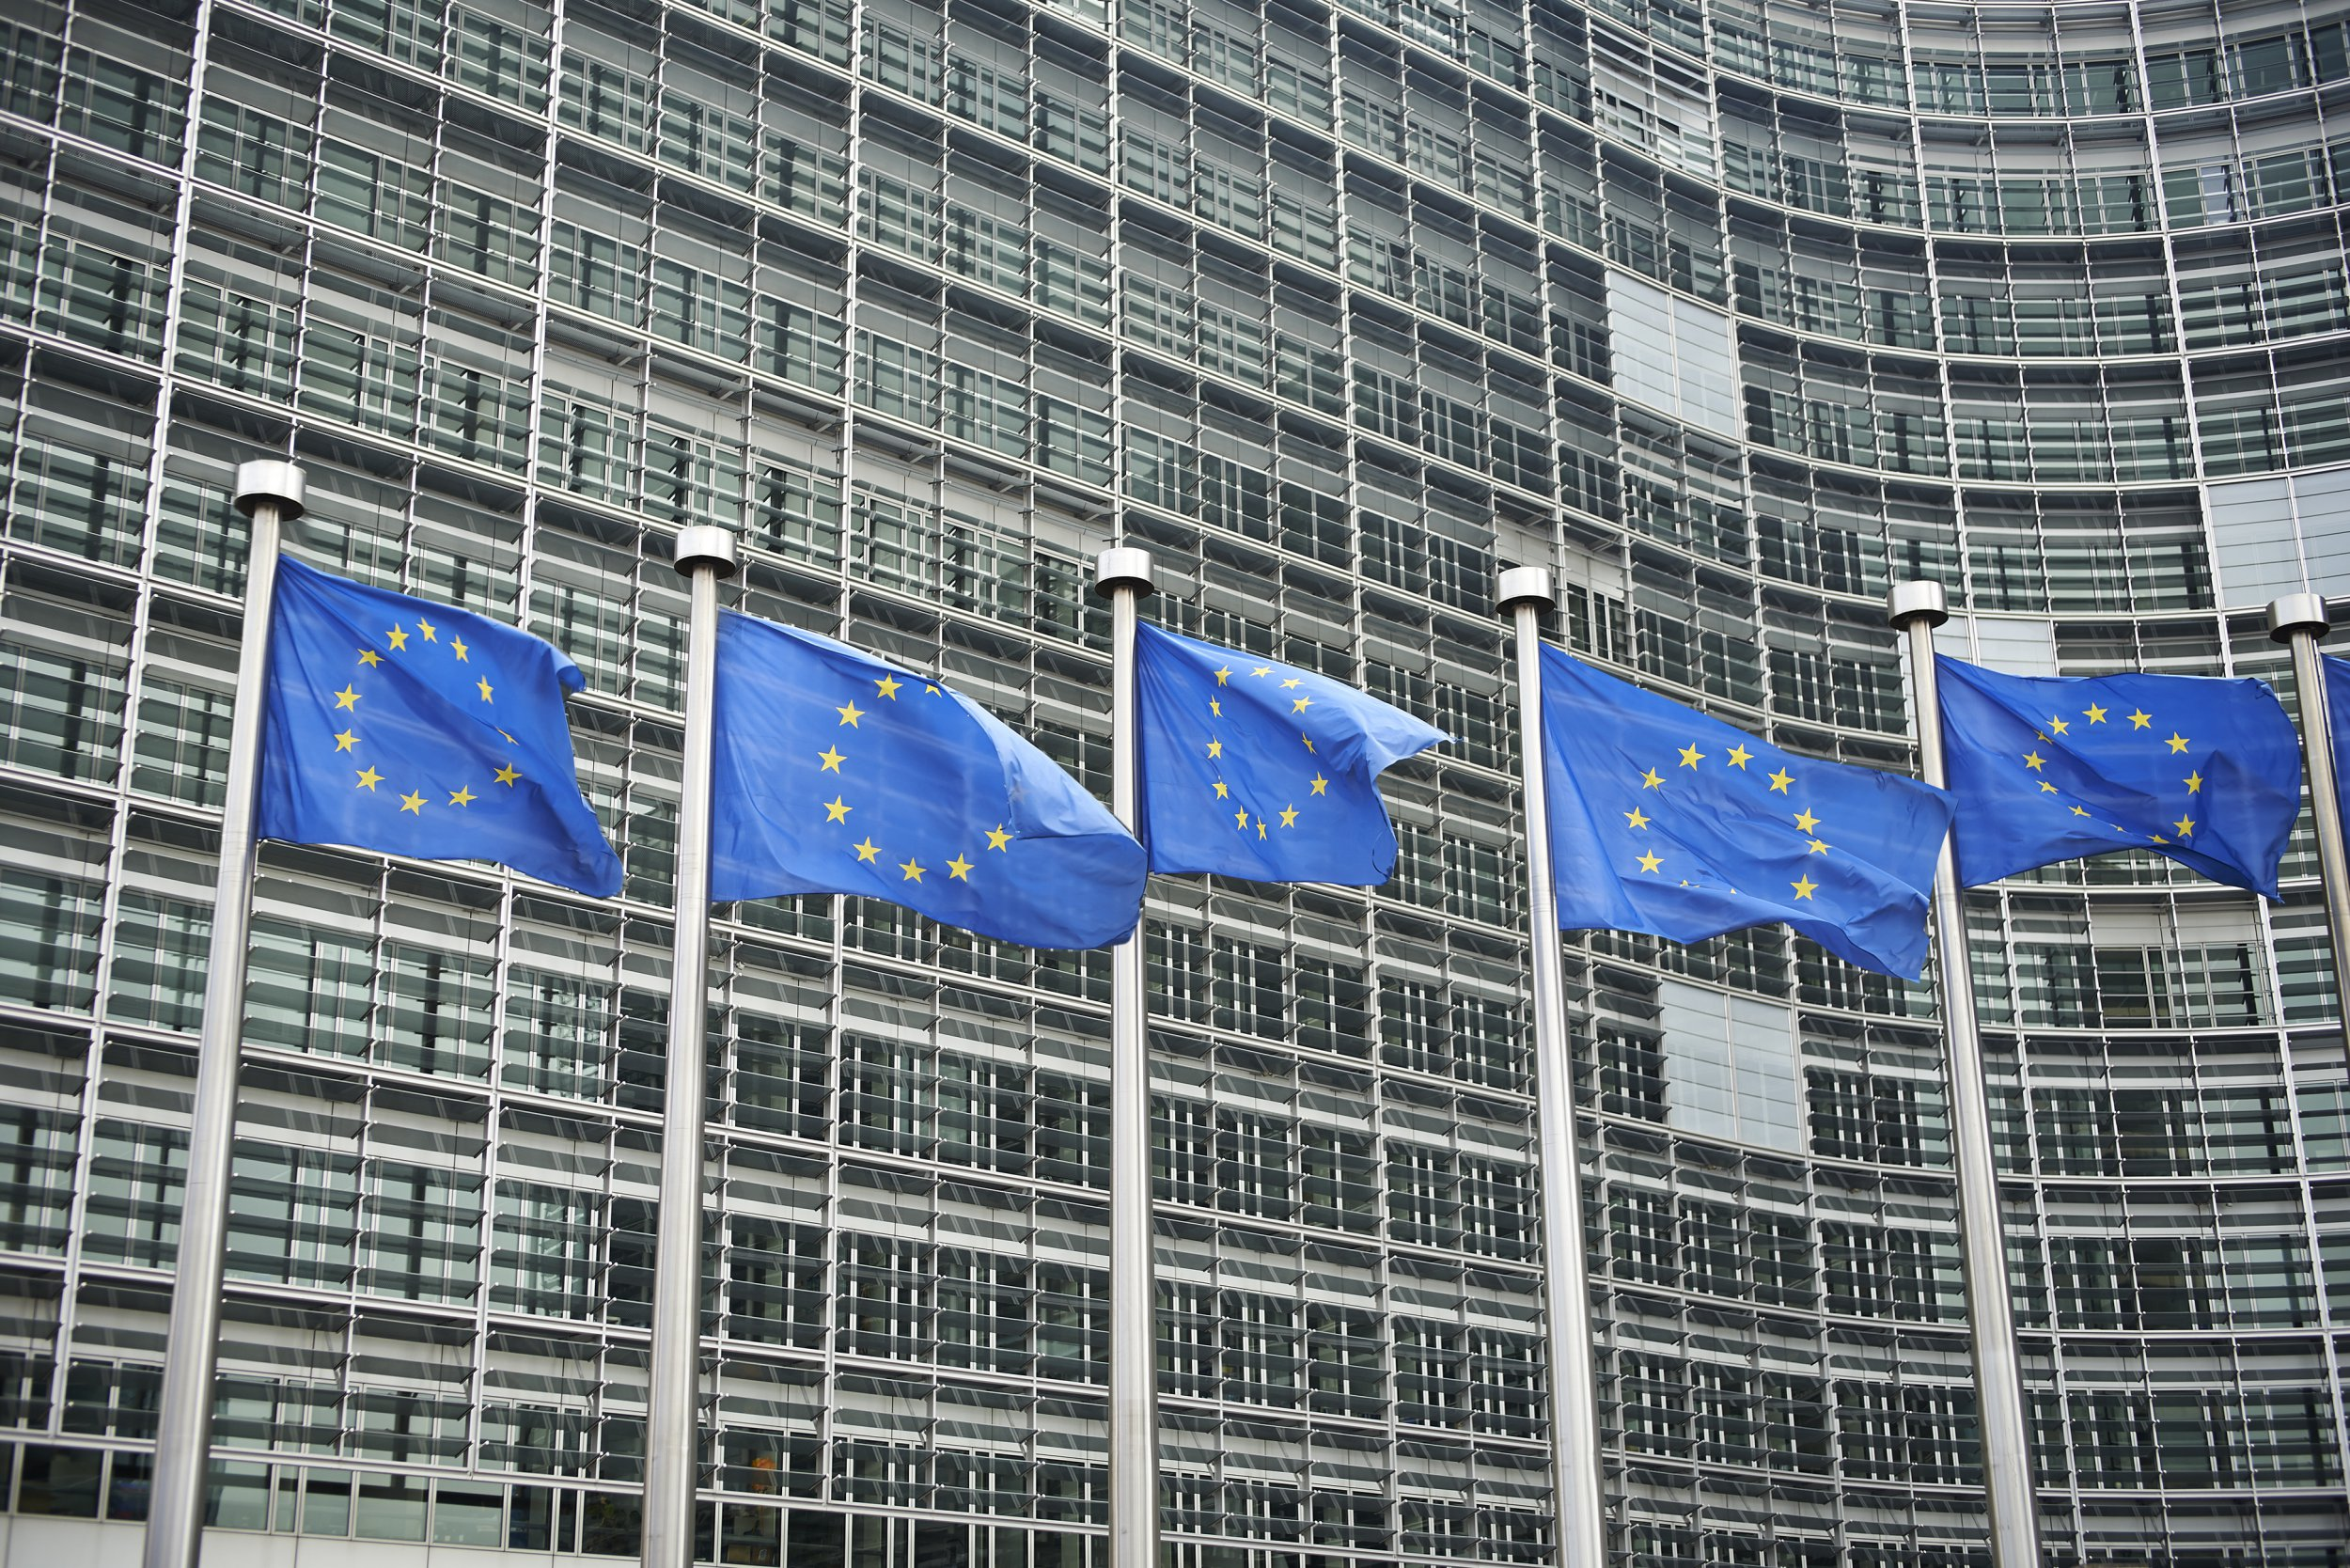 Here are all Google's fines from the European Commission